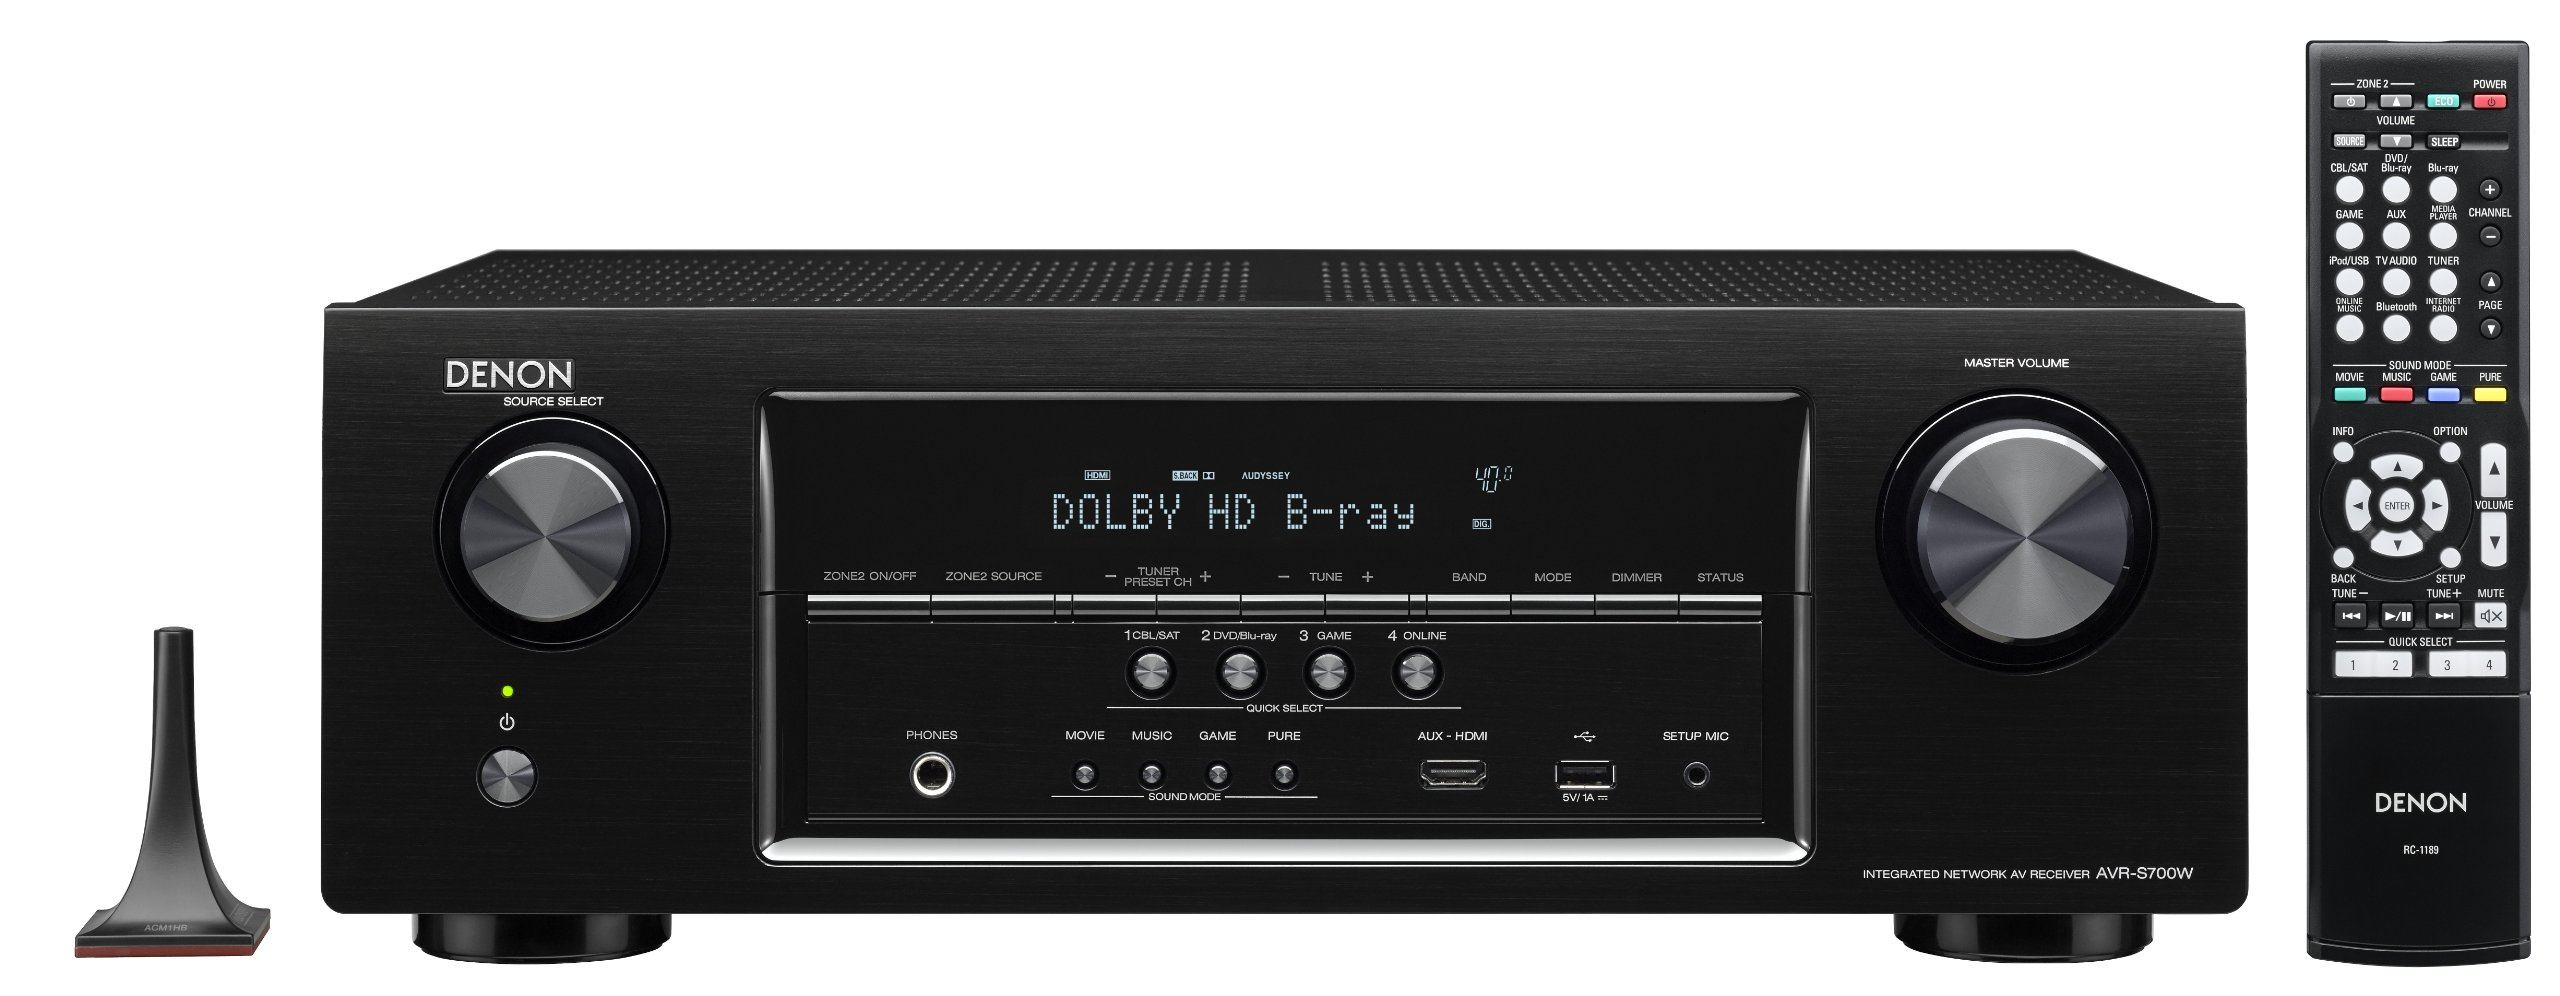 Denon AVR-S700W 7.2-Channel Network AV Receiver with Bluetooth and Wi-Fi (Discontinued by Manufacturer) by Denon